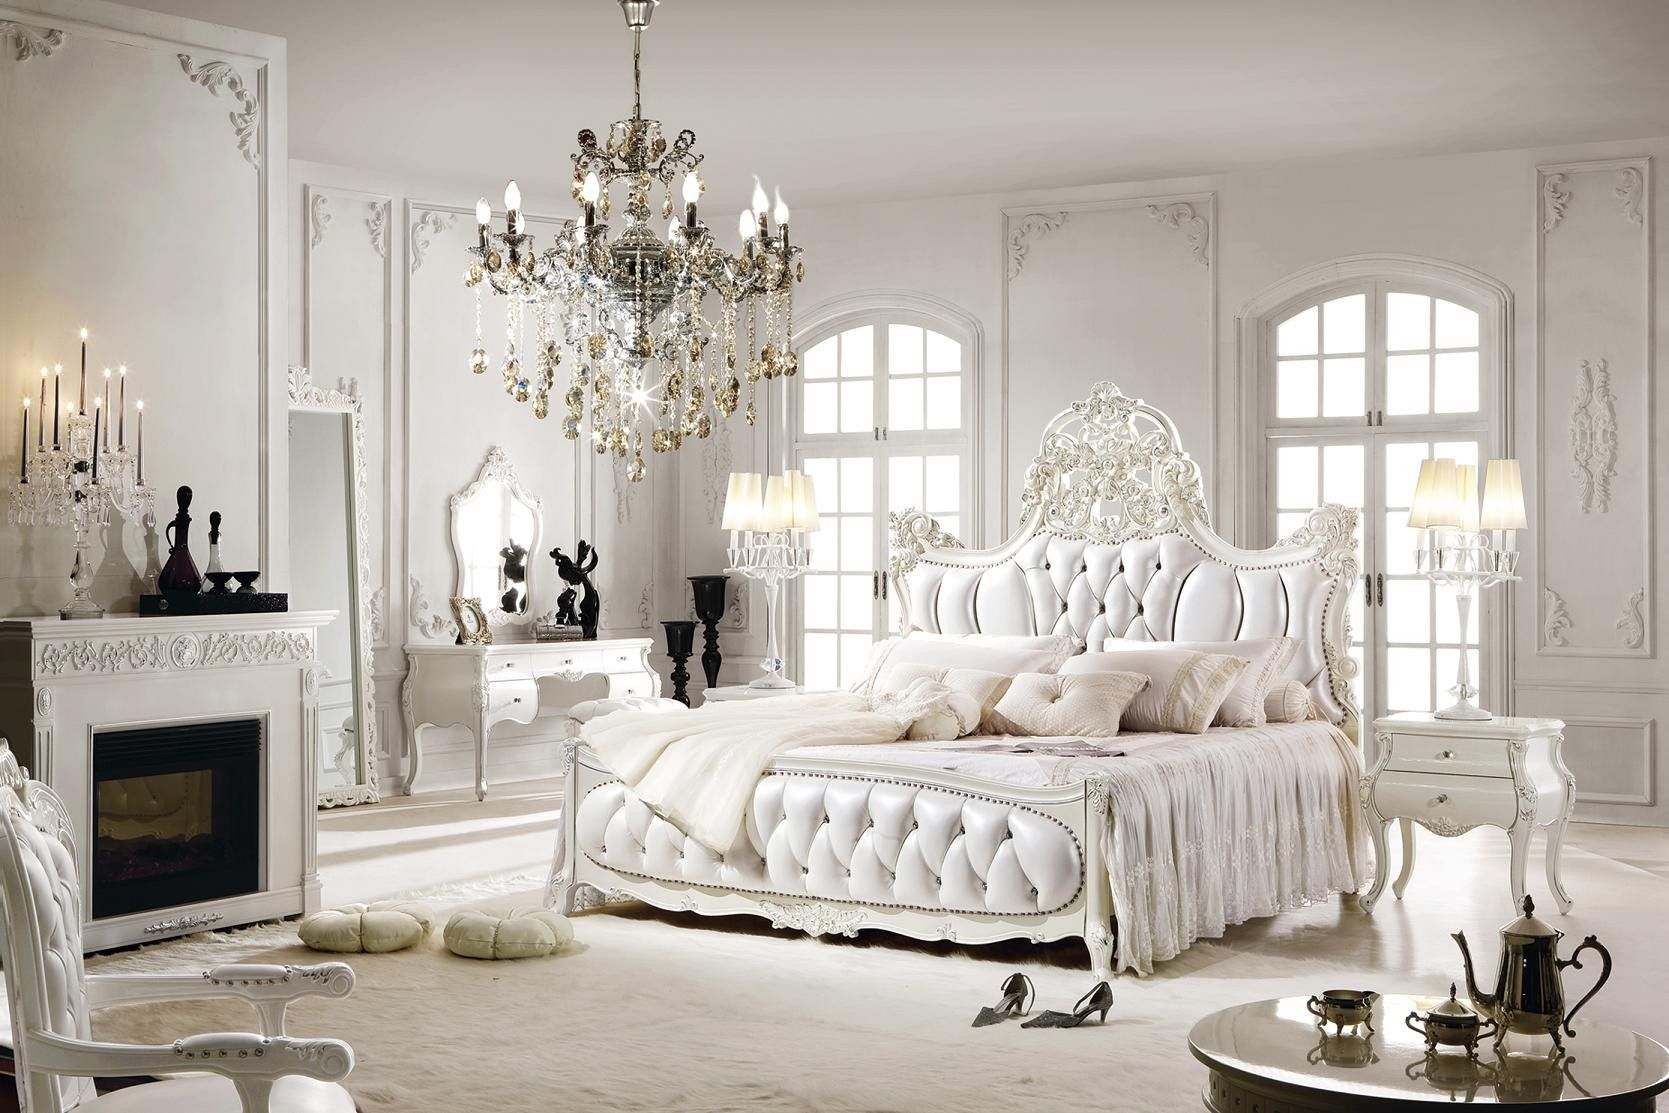 Best Royal Bedrooms Luxurious Bedrooms Bedroom Interior 400 x 300